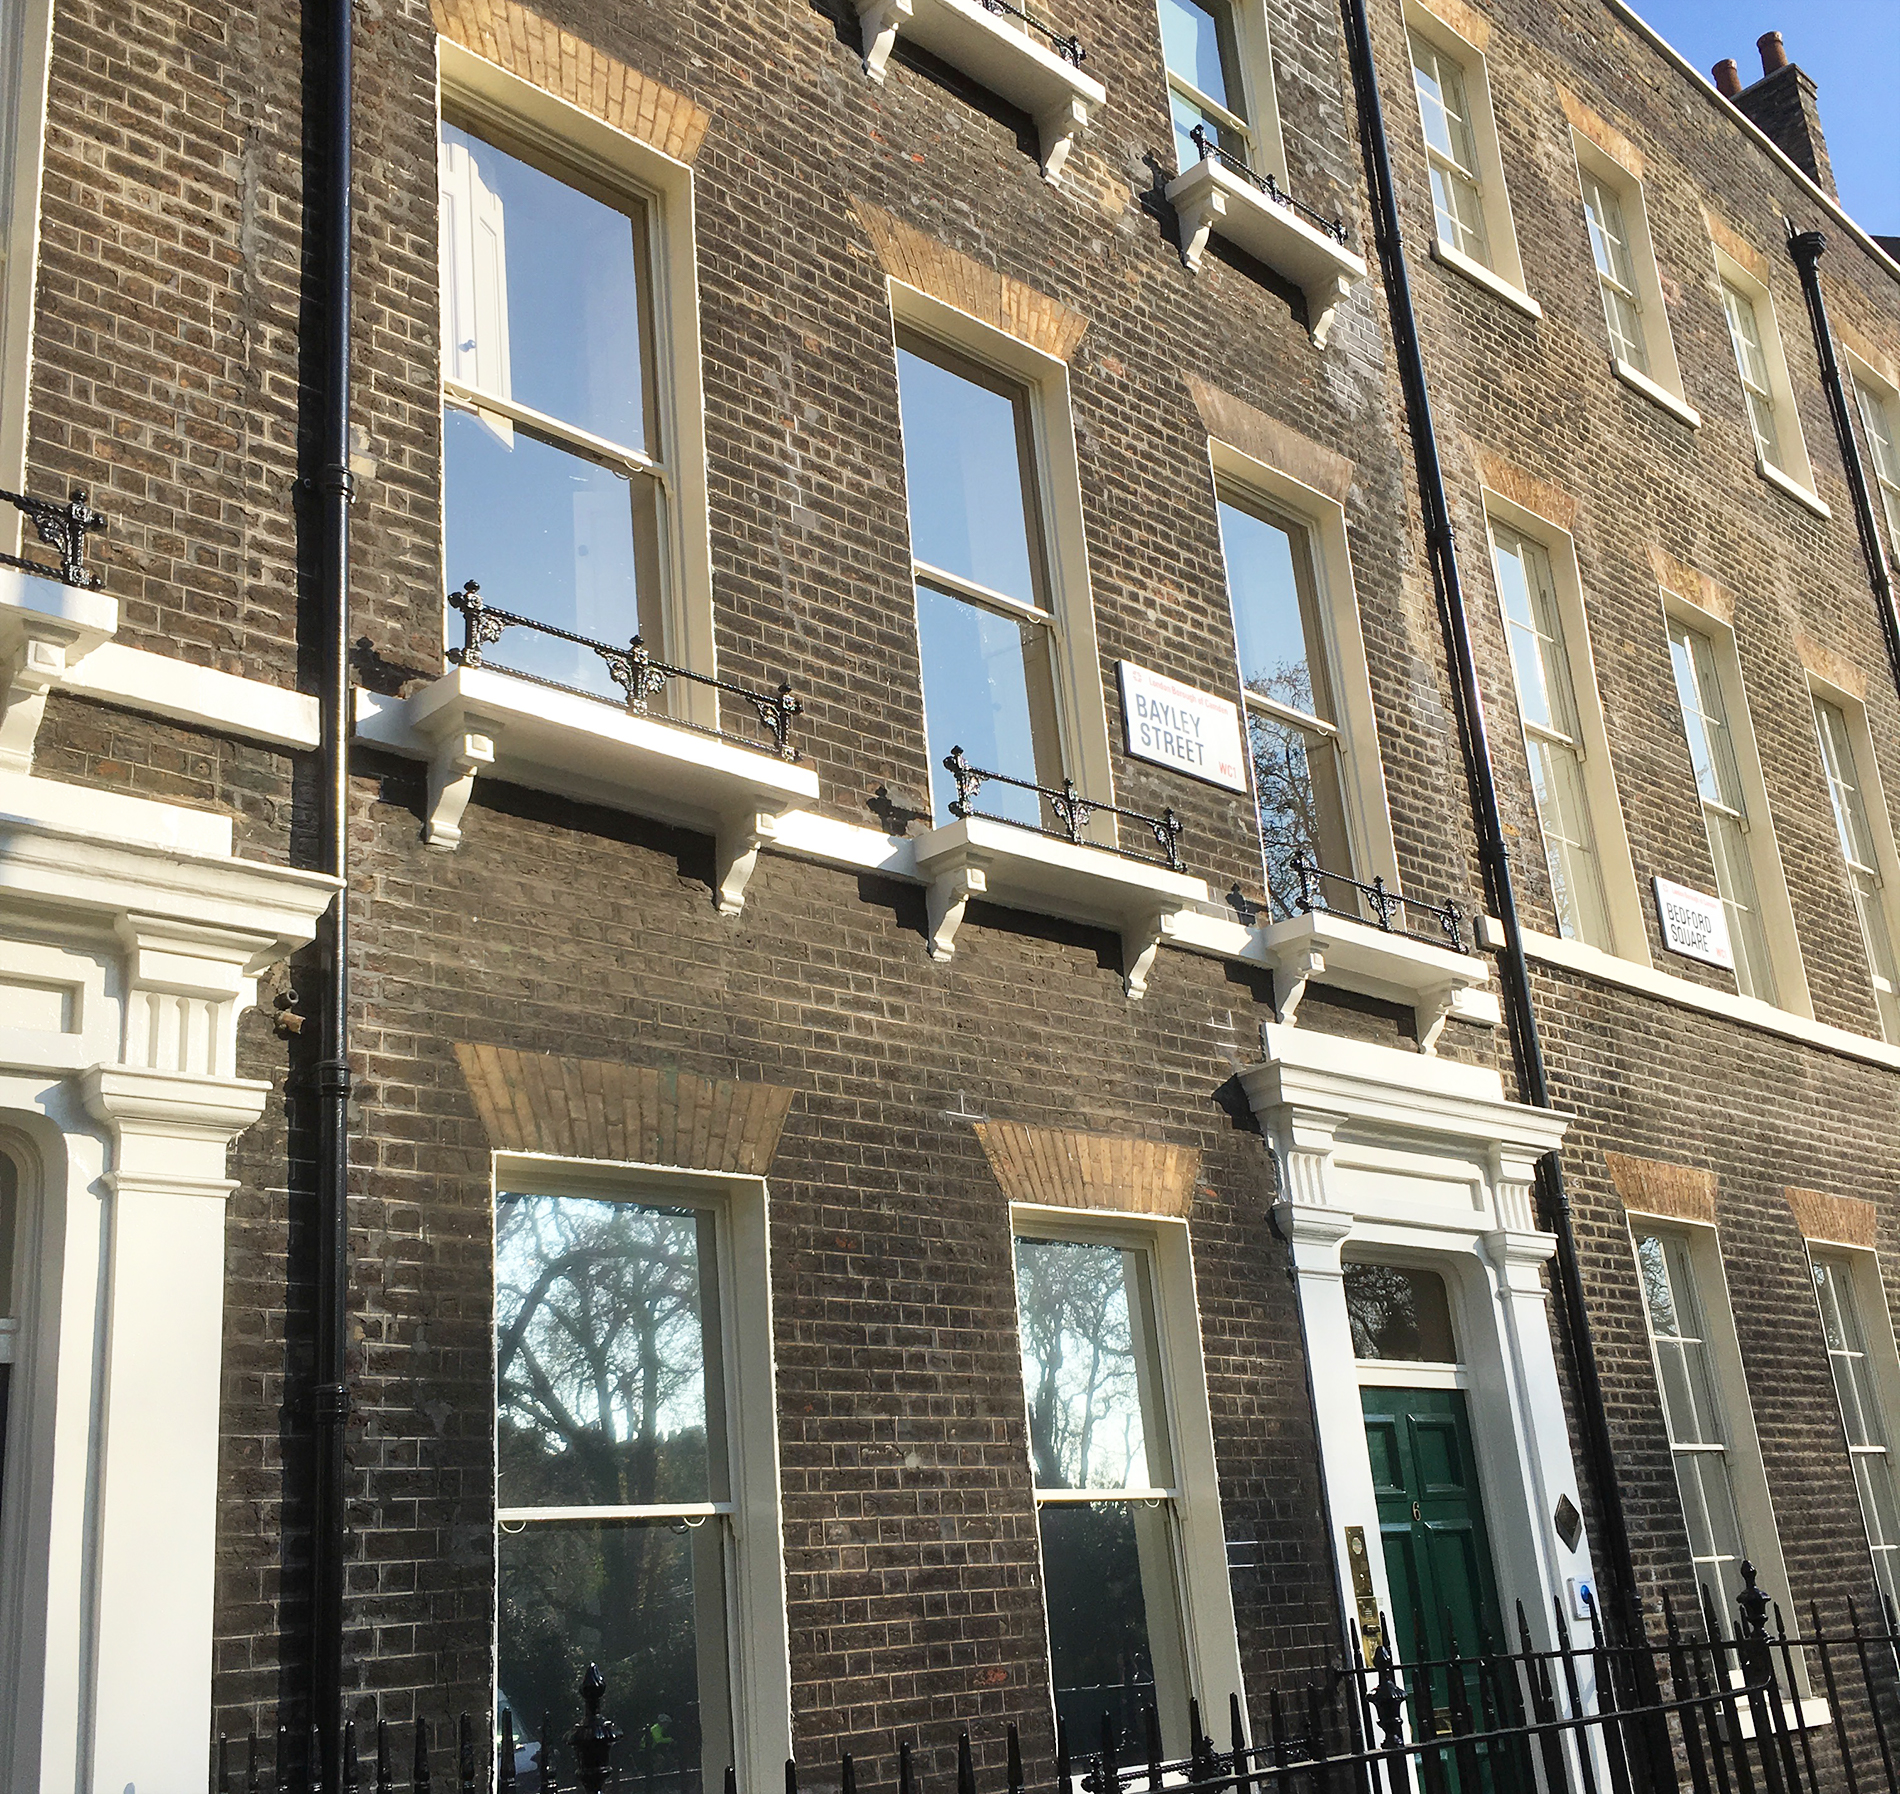 Bayley Street, Bloomsbury, WC1